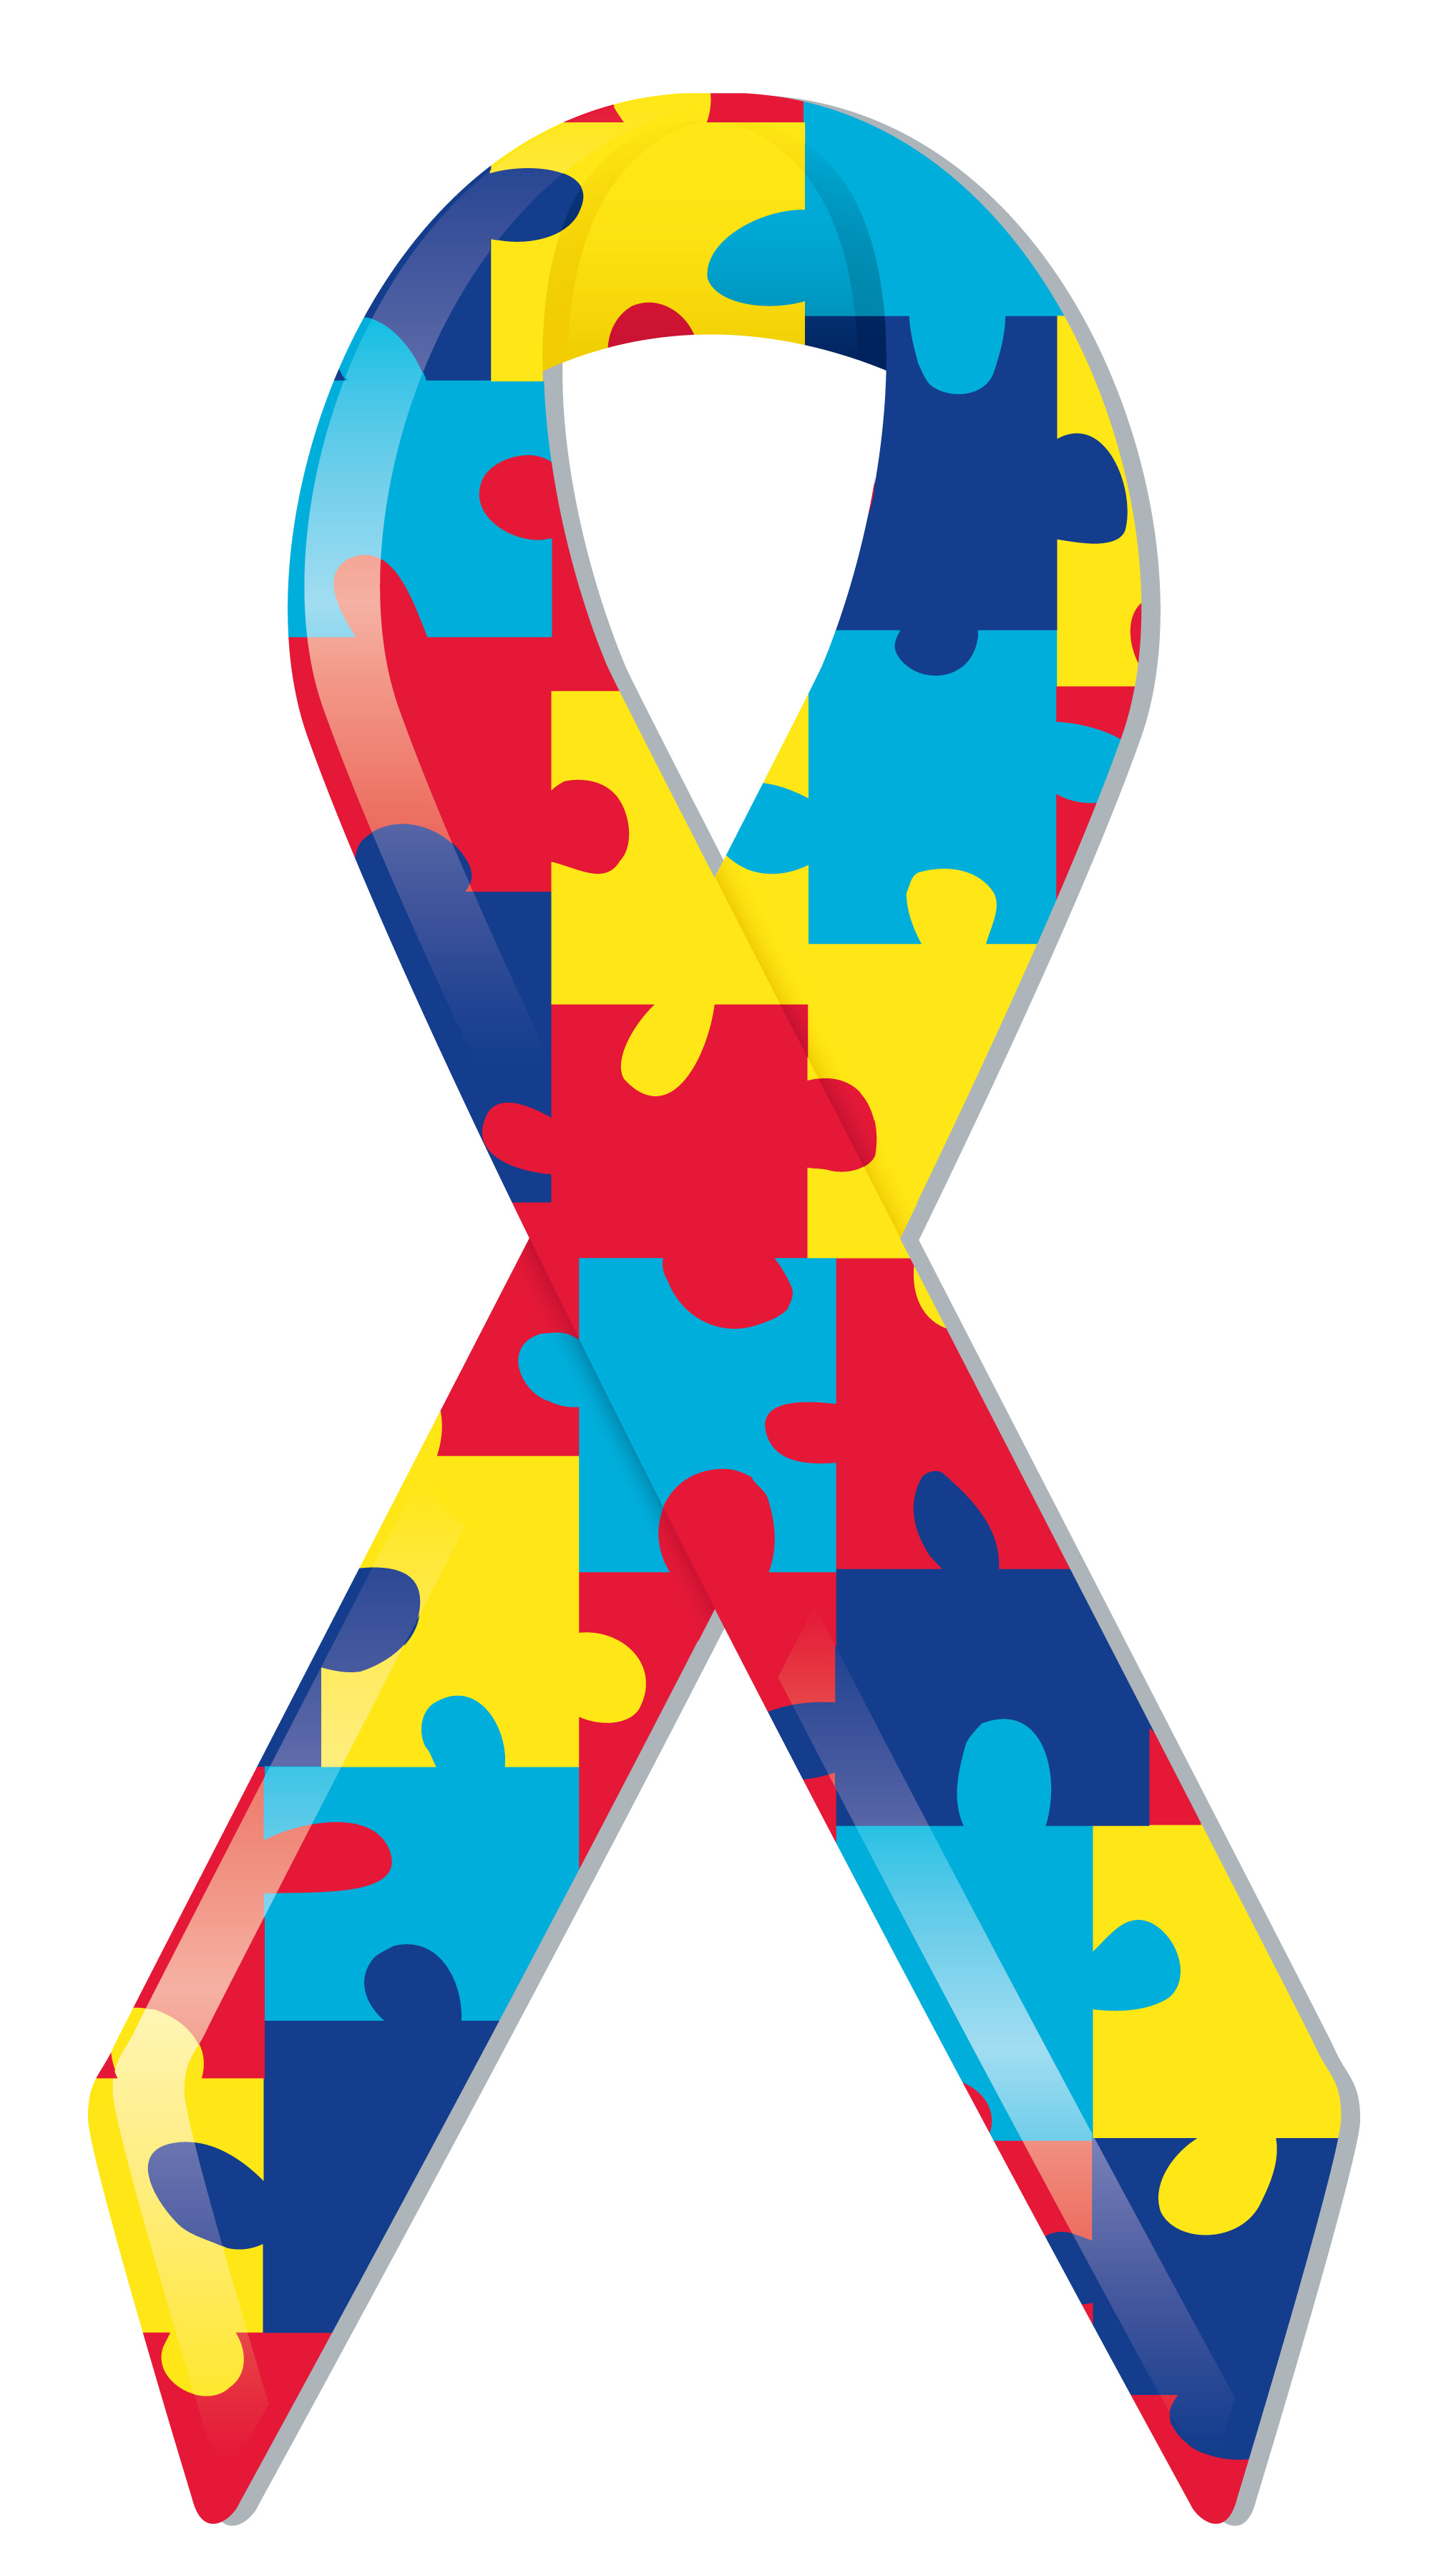 Autism Awareness Ribbon Clip Art free image.